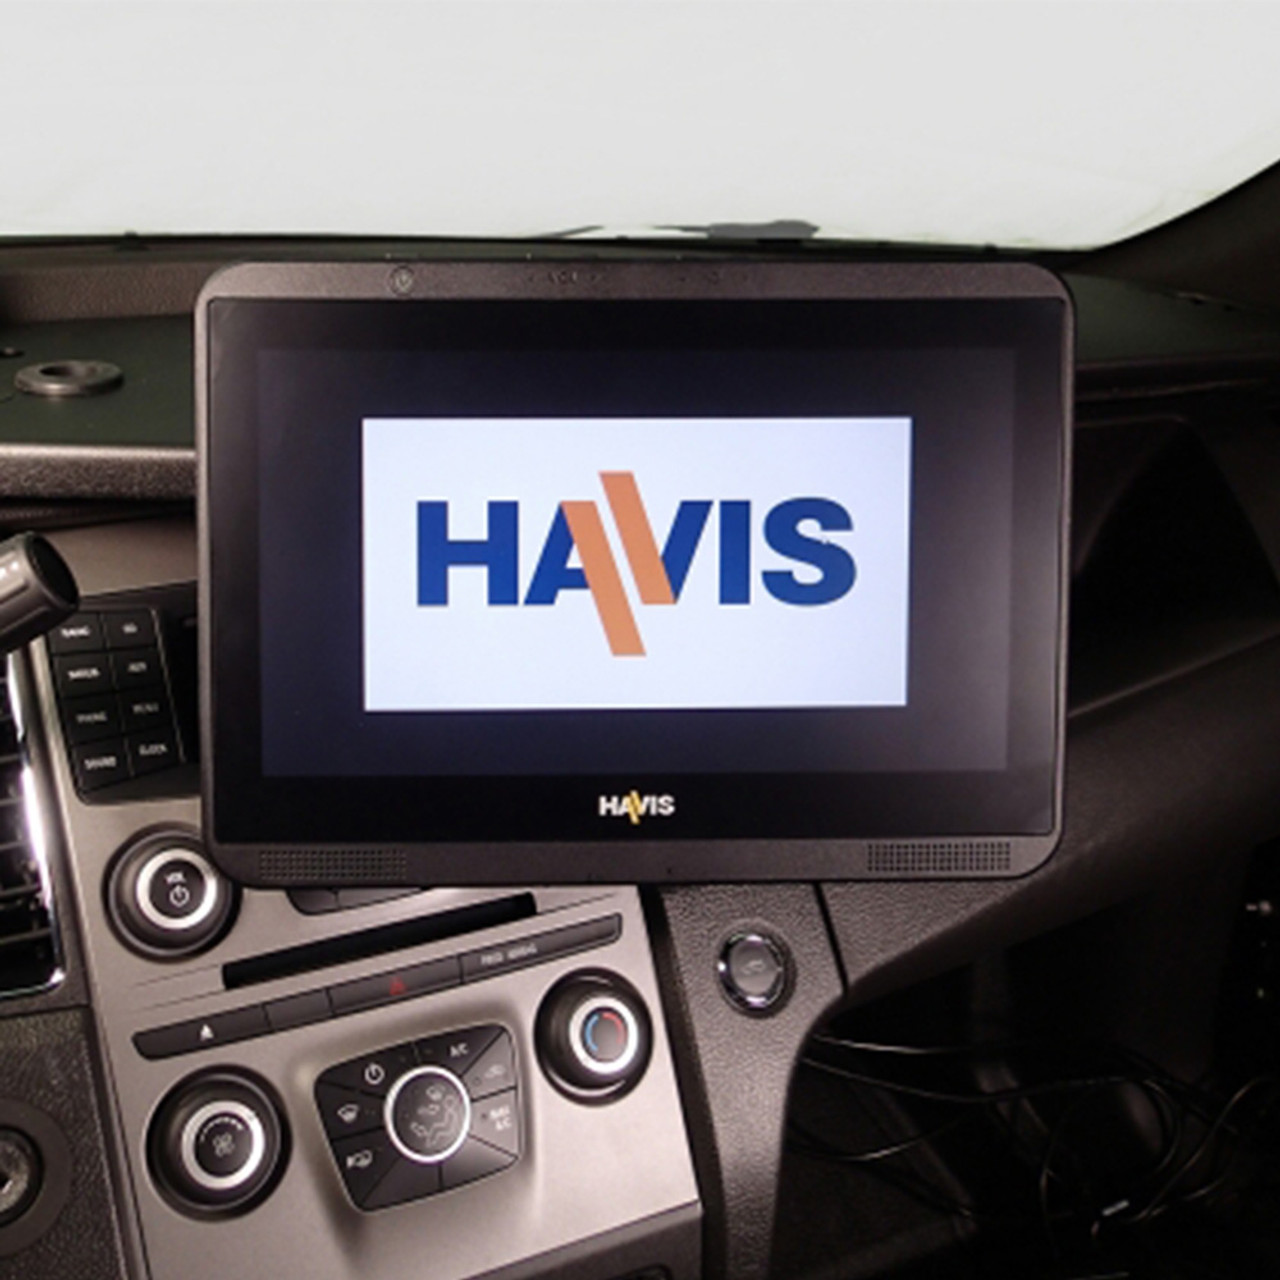 Havis C-DMM-2002 Dashboard Monitor or Tablet Mount for 2013-2019 Ford Police Interceptor Sedan,  Landscape or Portrait Applications with Tilt Swivel Motion for Left, Right, Up and Down Positioning